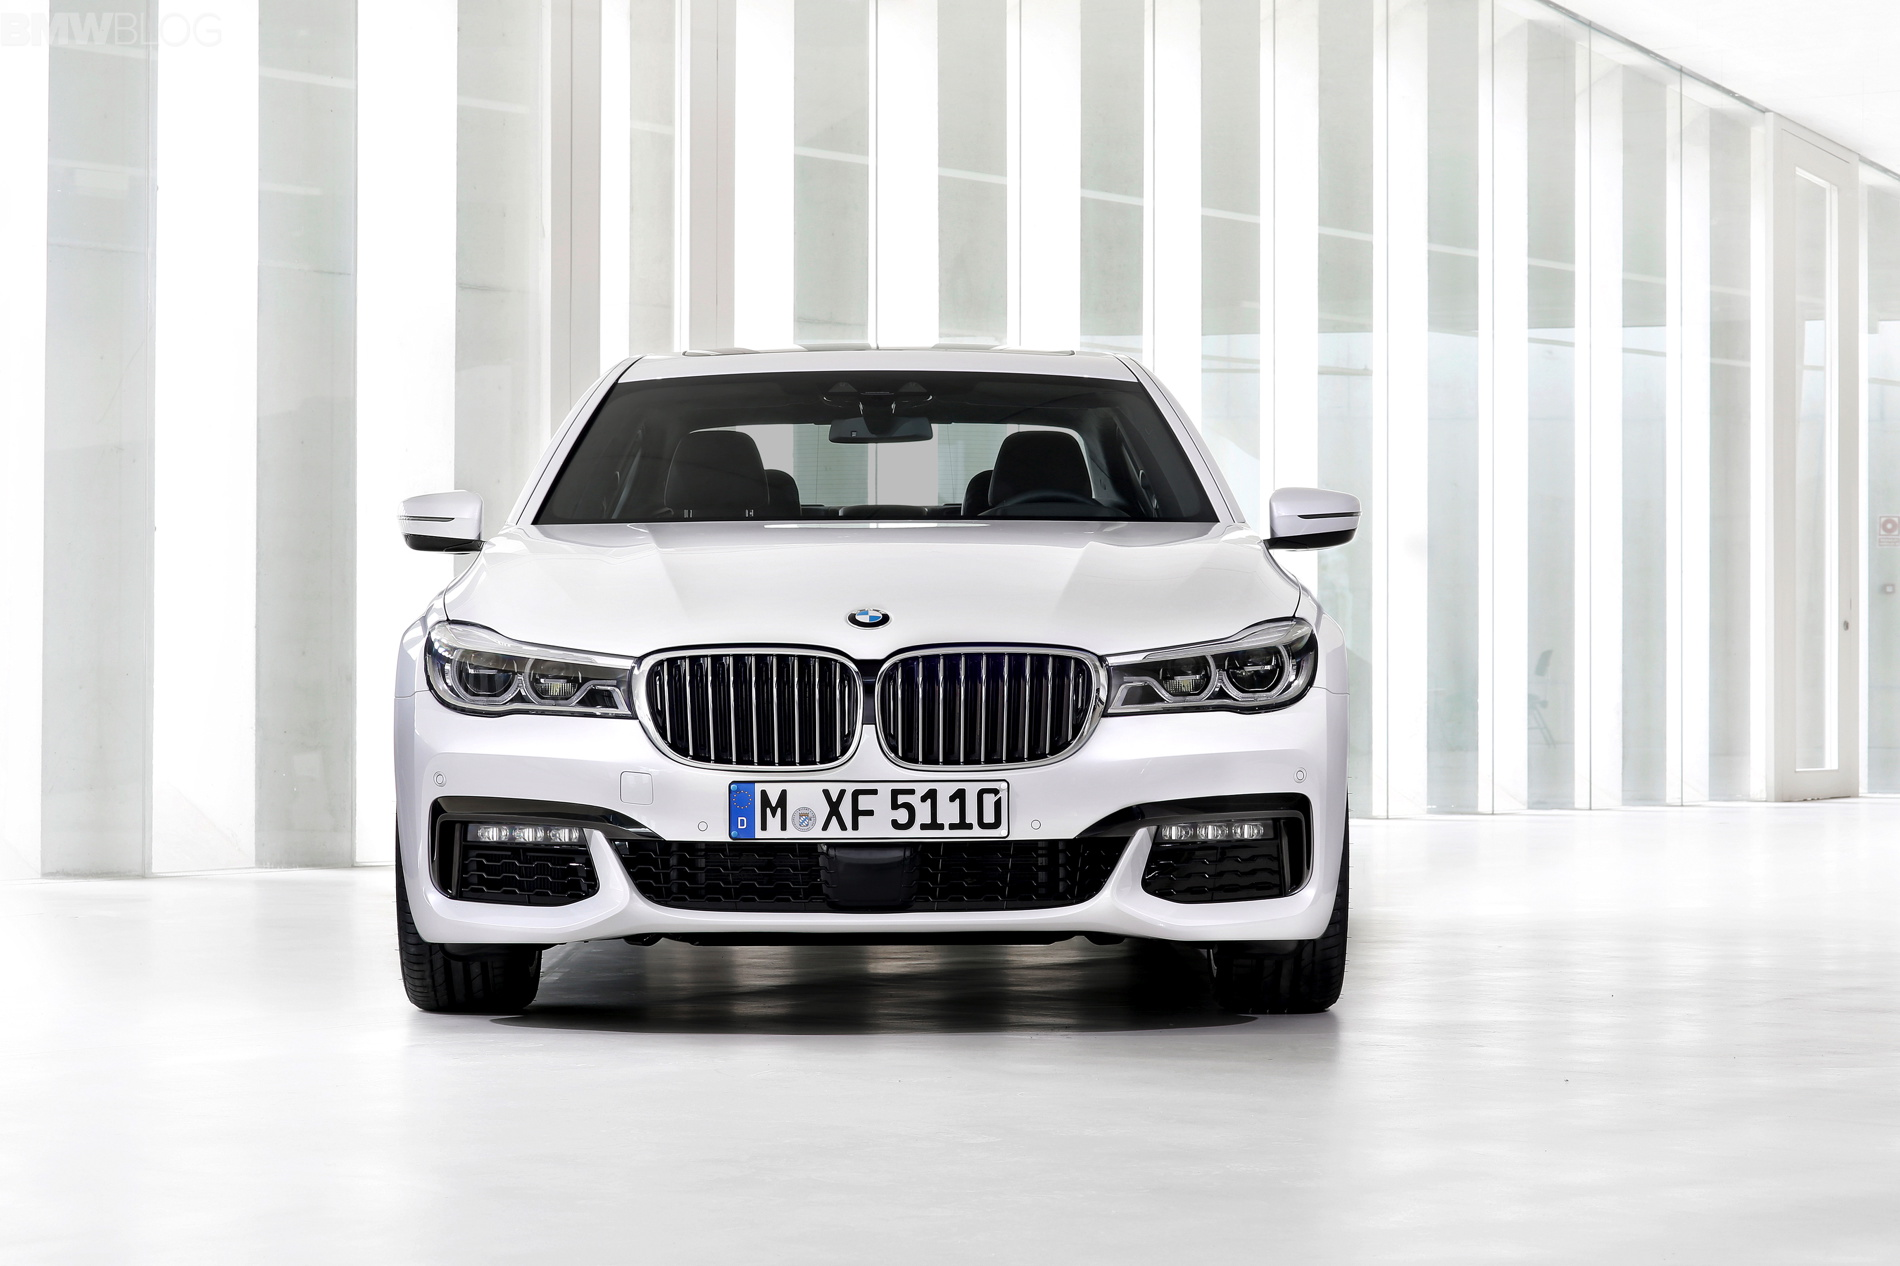 2016 Bmw 7 Series With M Sport Package